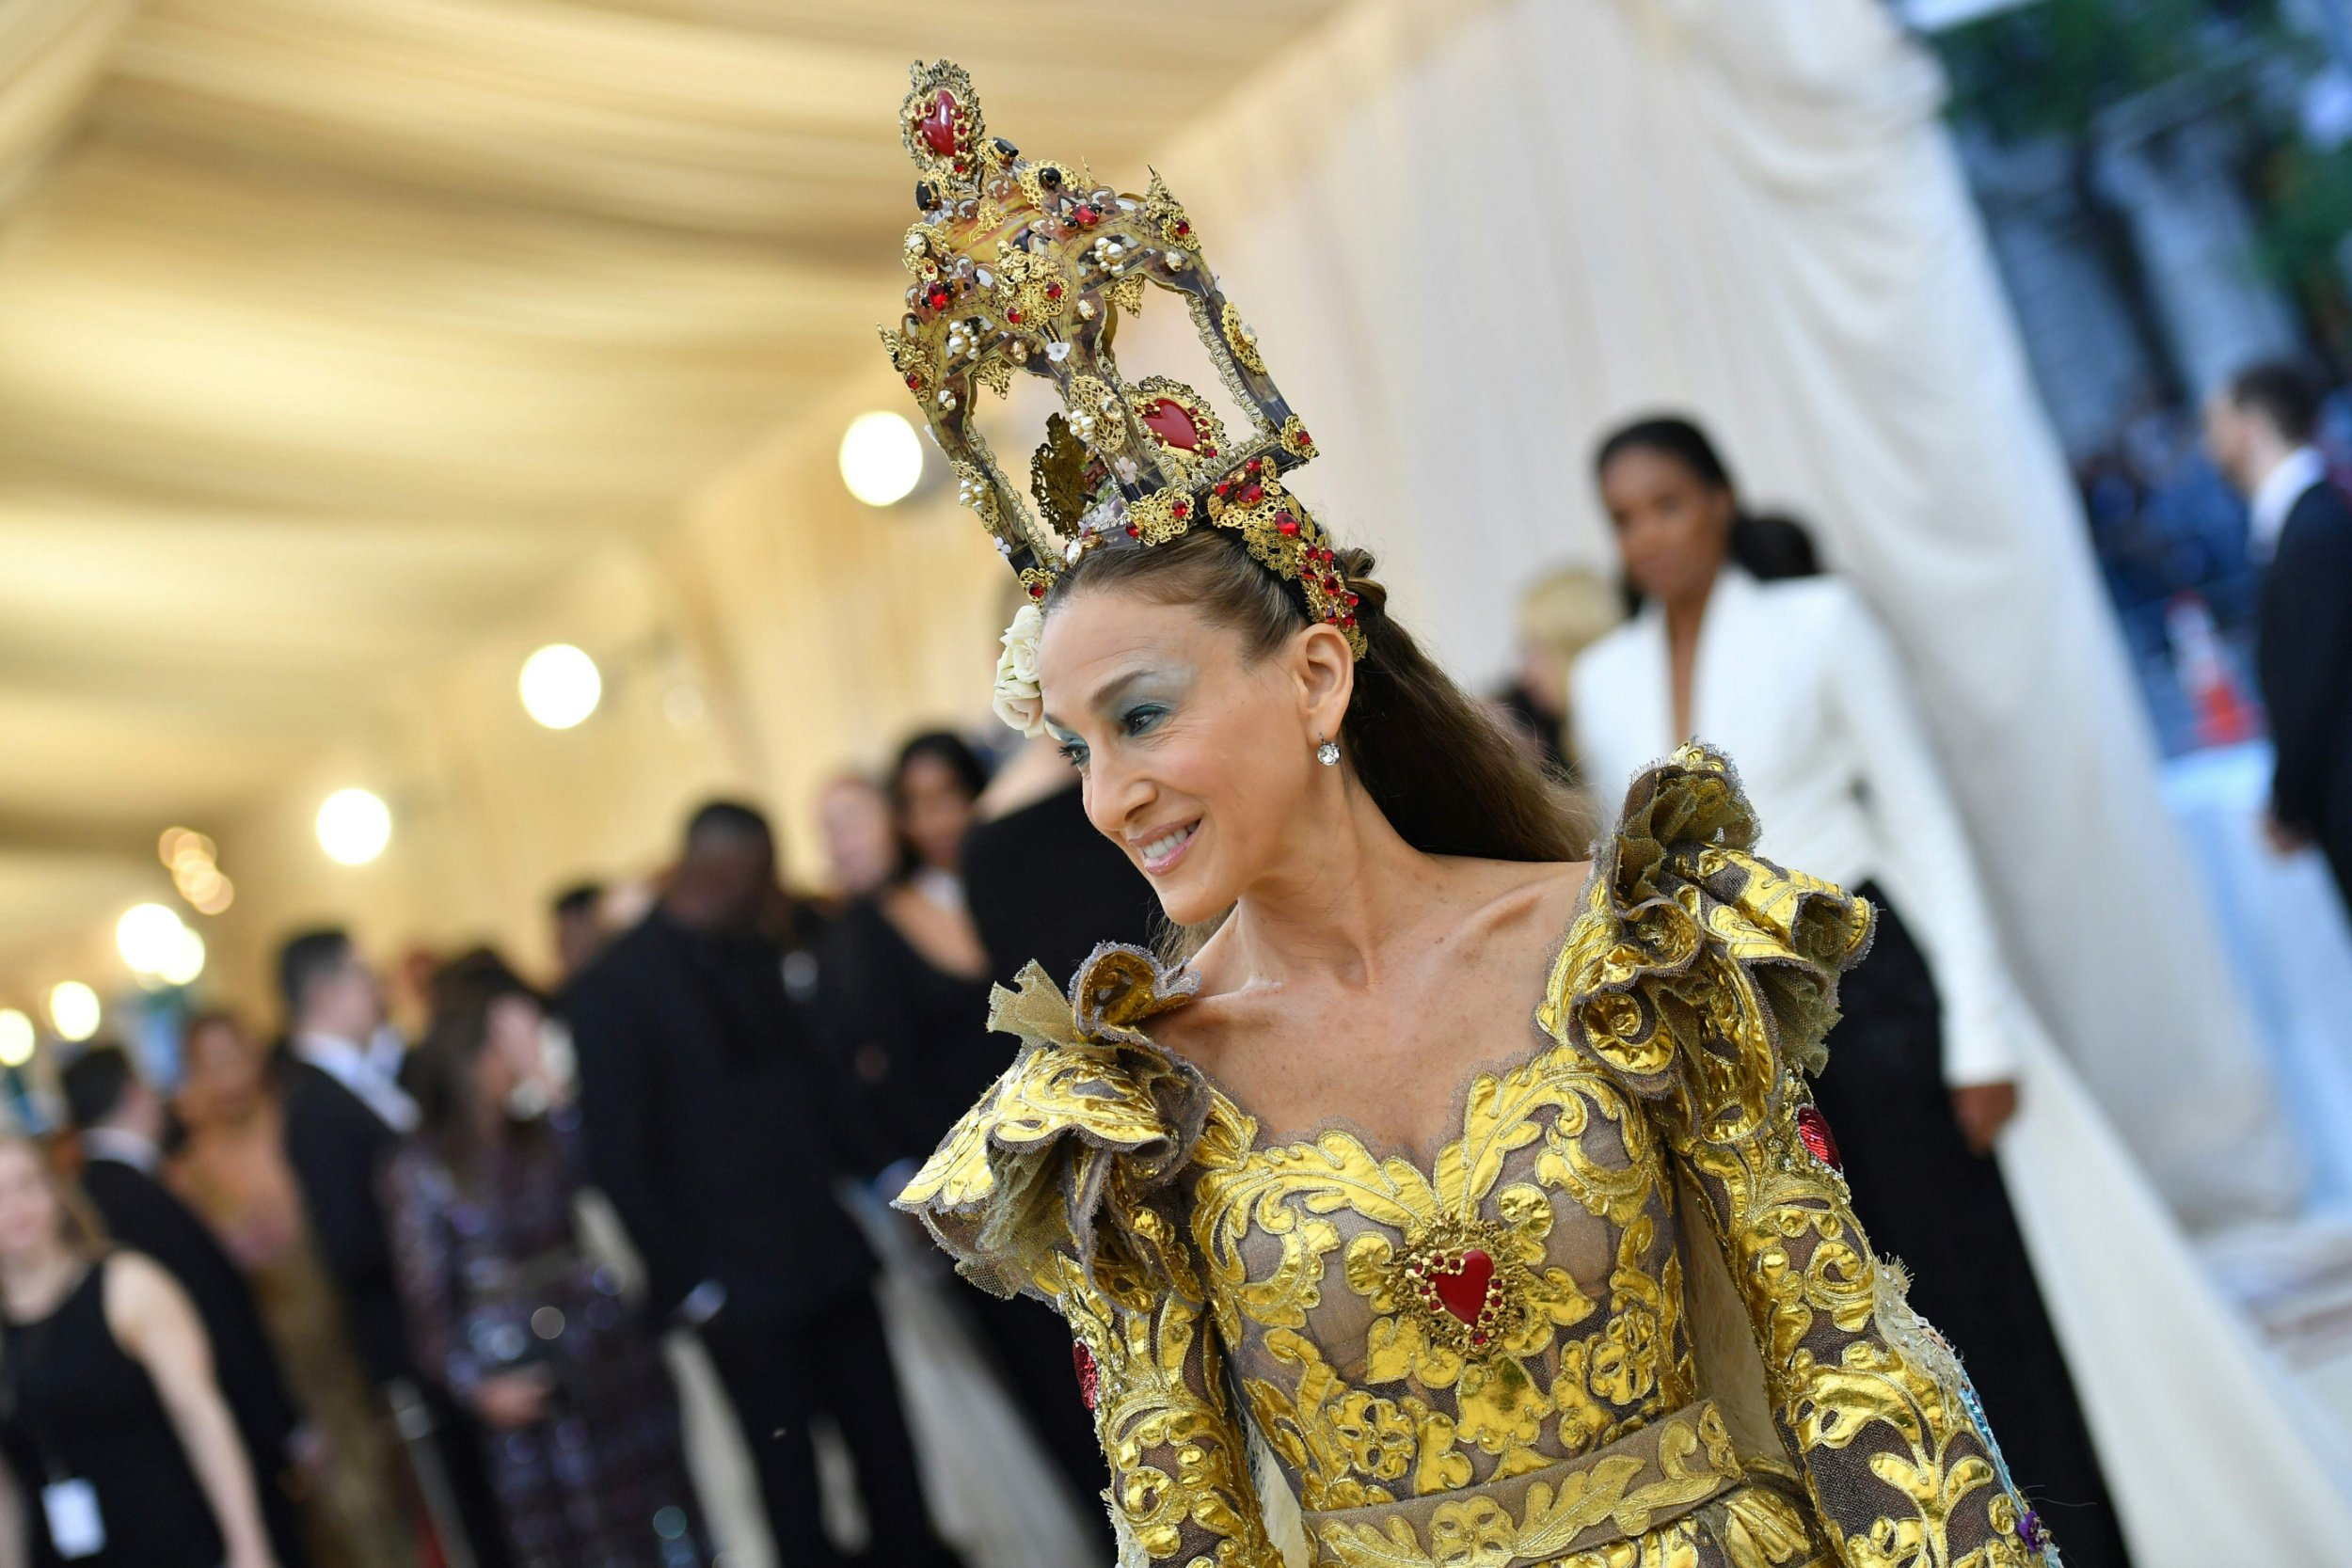 Sarah Jessica Parker arrives for the 2018 Met Gala on May 7, 2018, at the Metropolitan Museum of Art in New York. The Gala raises money for the Metropolitan Museum of Arts Costume Institute. The Gala's 2018 theme is Heavenly Bodies: Fashion and the Catholic Imagination. / AFP PHOTO / Angela WEISSANGELA WEISS/AFP/Getty Images